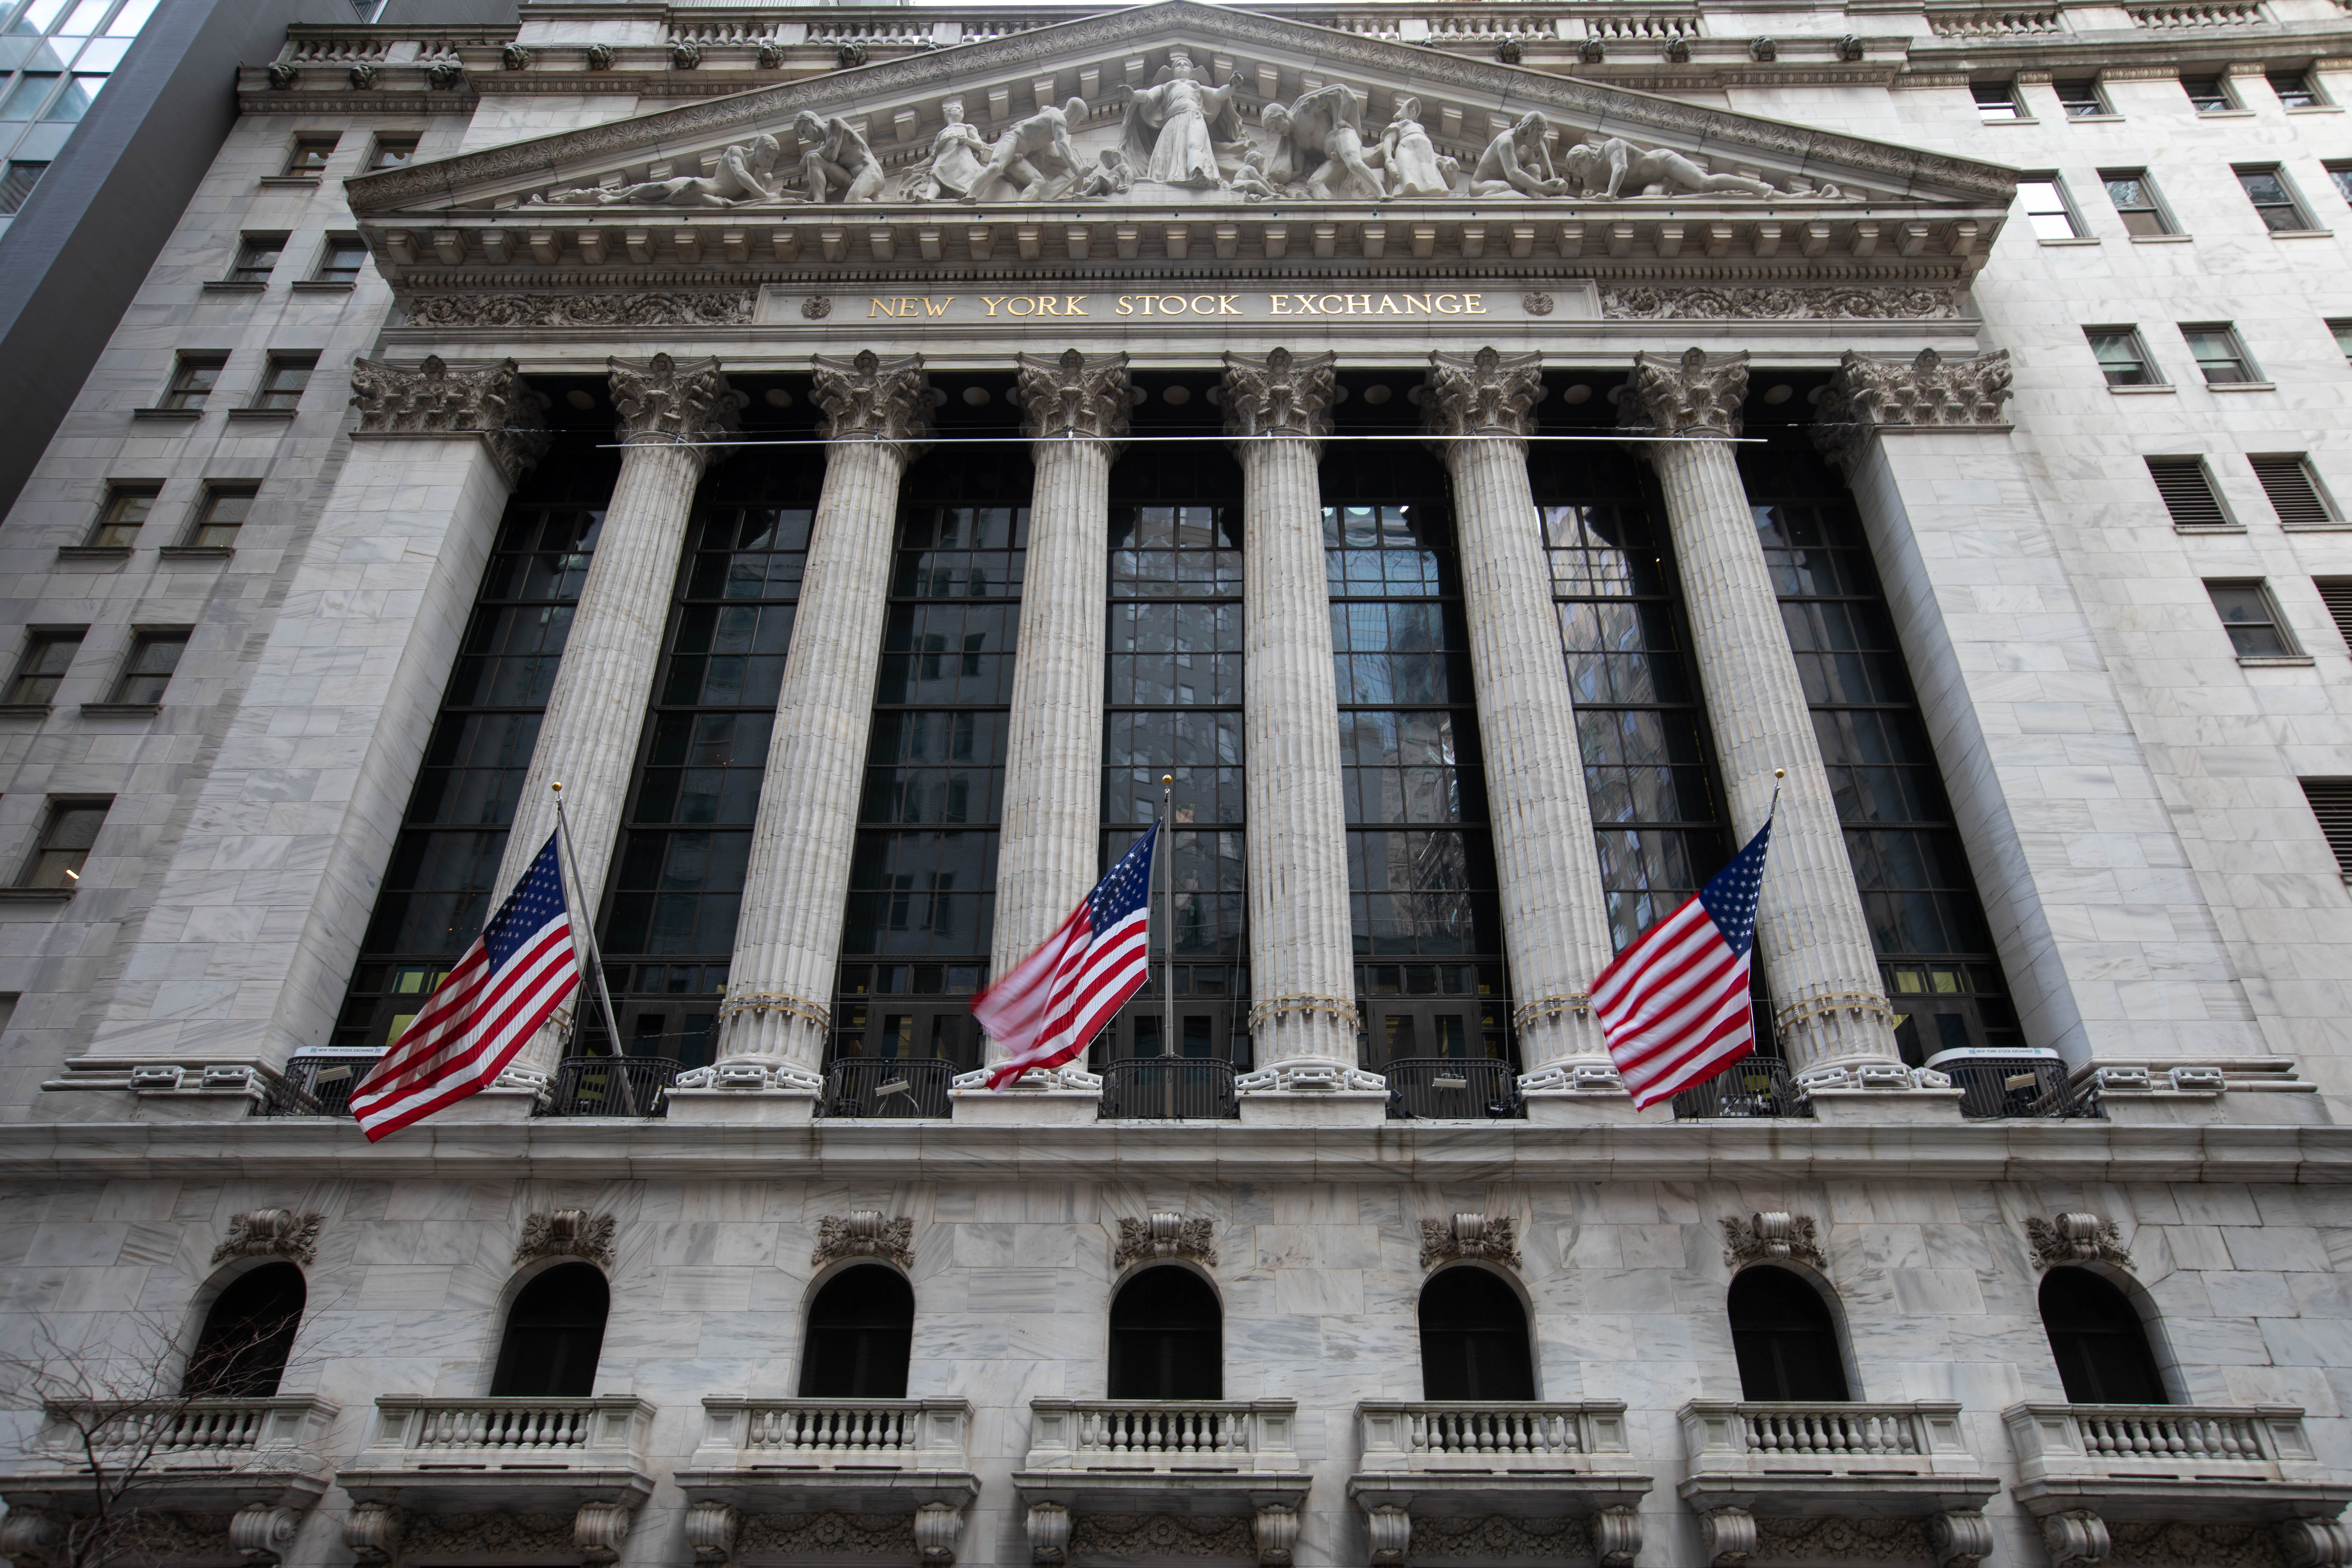 American flags fly outside the New York Stock Exchange on Monday.